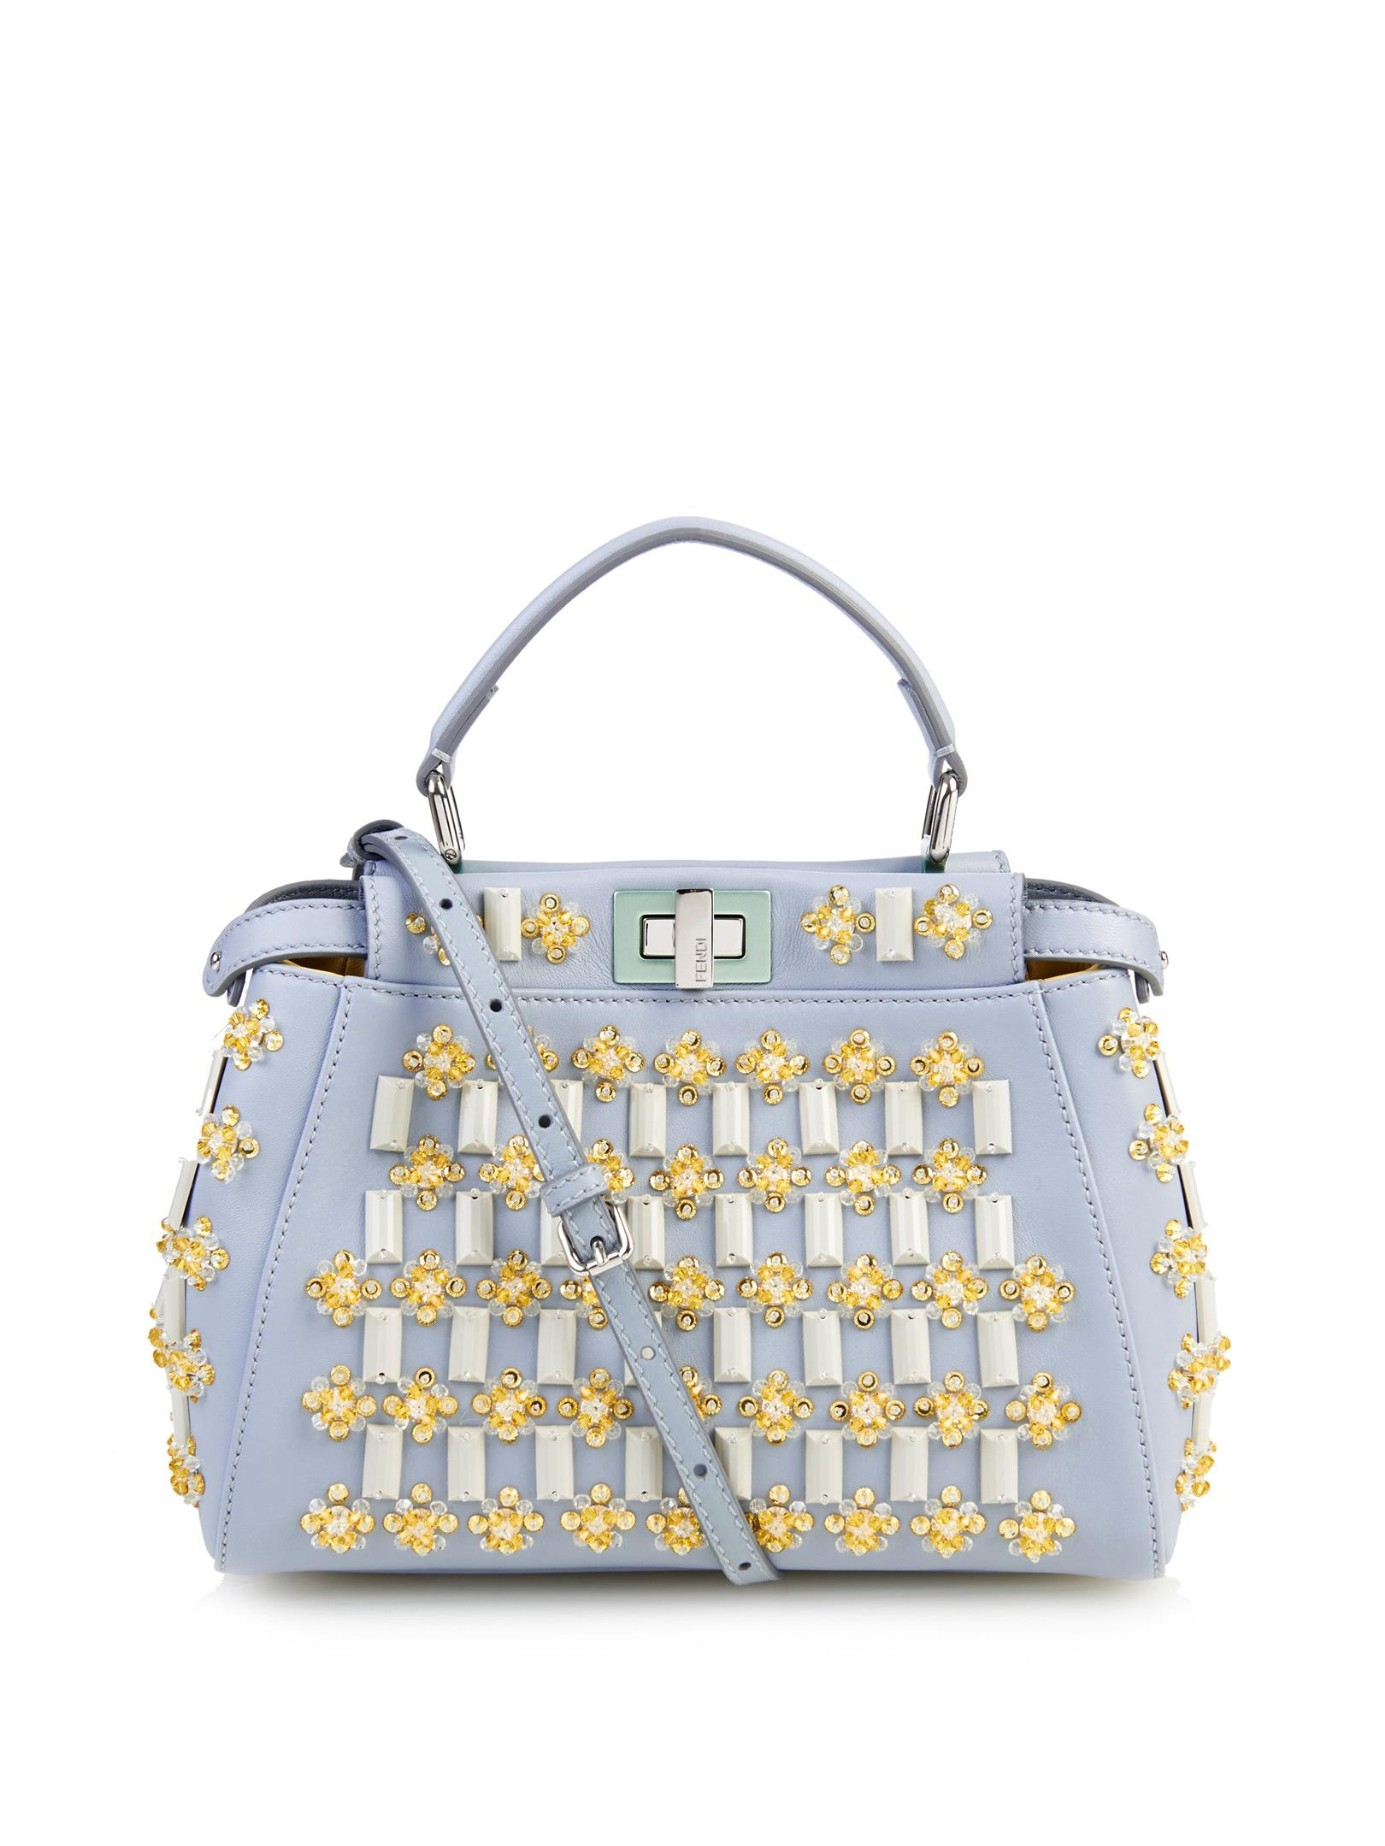 7d50324e2e2f ... coupon code for lyst fendi mini peekaboo floral embellishments cross  body bag in blue 91677 45f5f